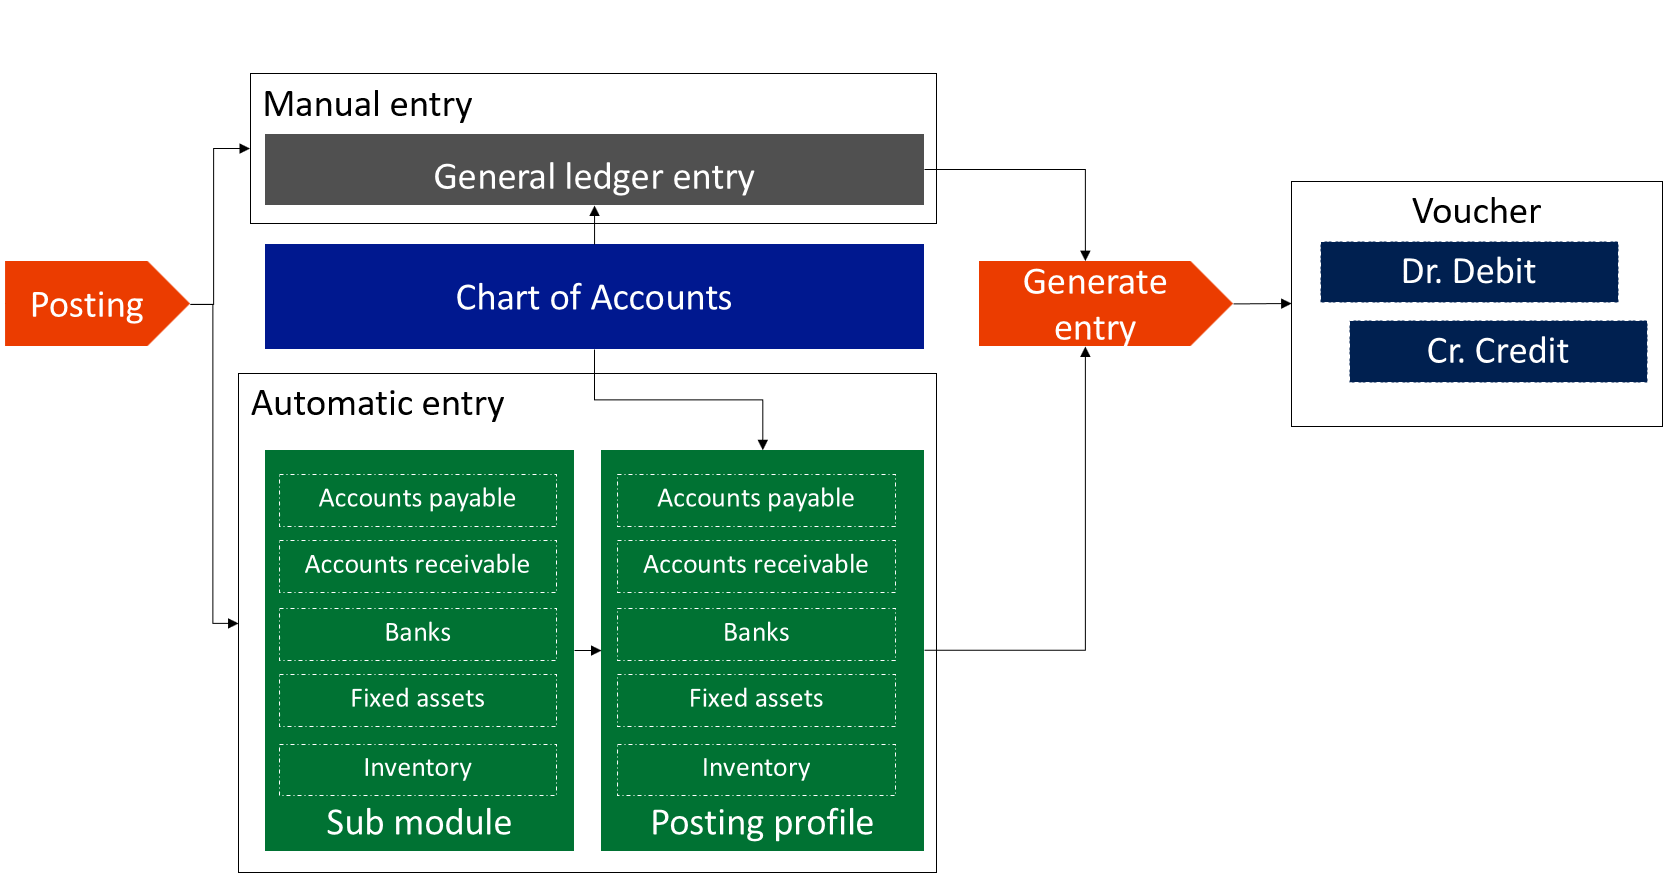 Posting types in Microsoft Dynamics 365 for Finance and